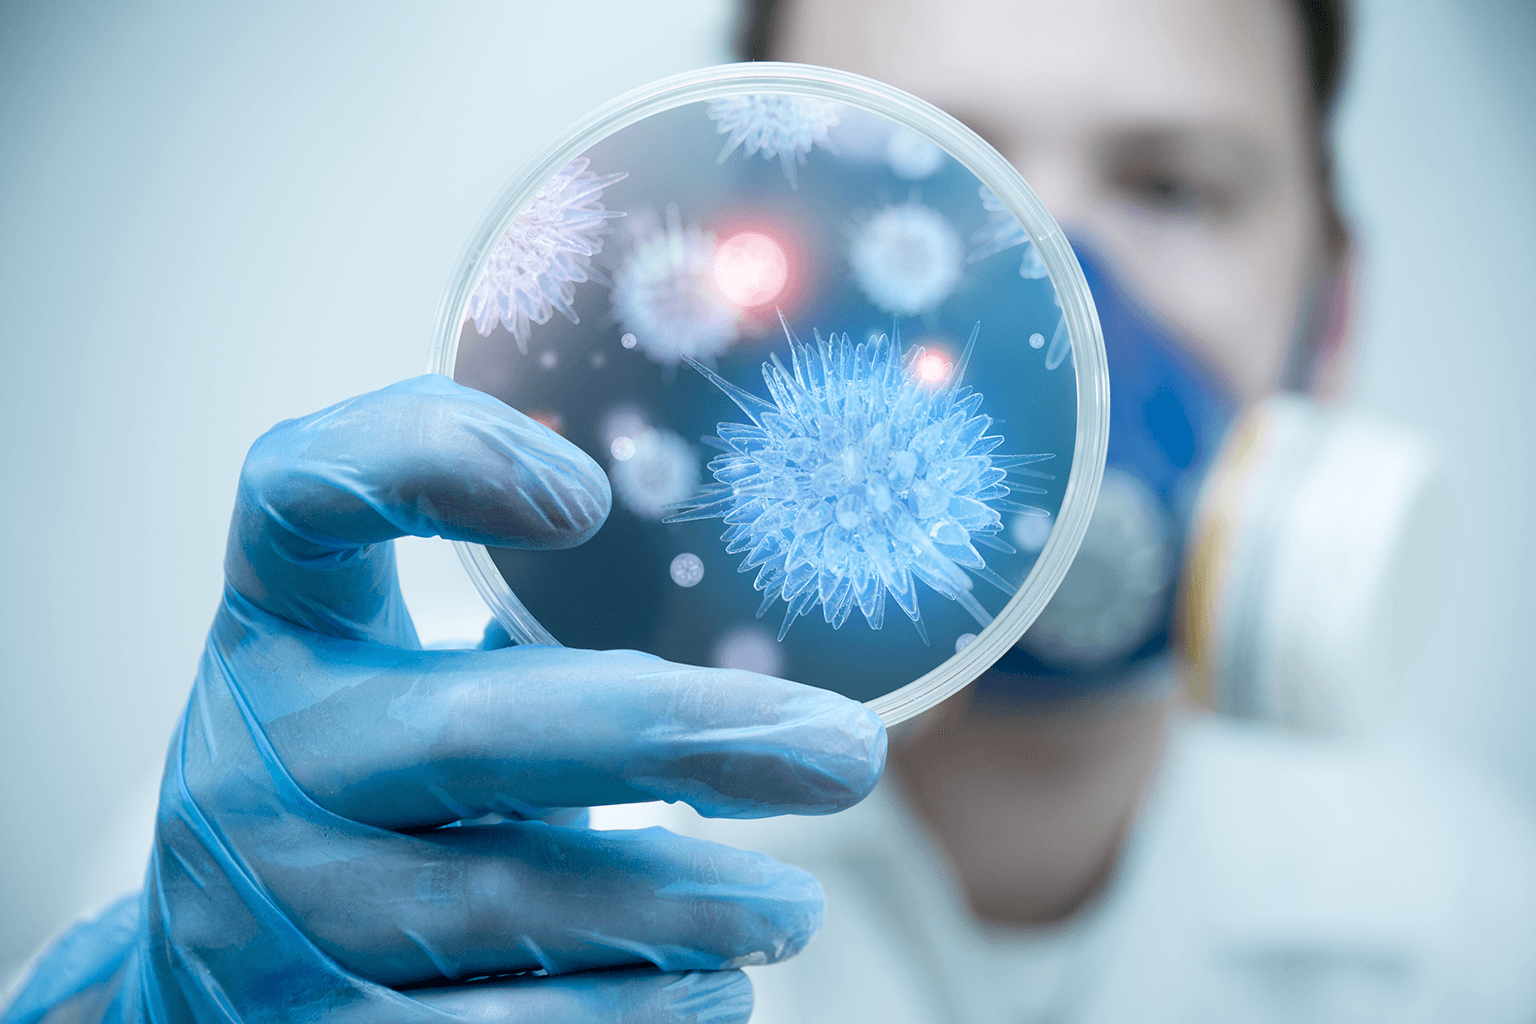 infection-prevention-healthcare-associated-infections-clinician-reviewing-microbes